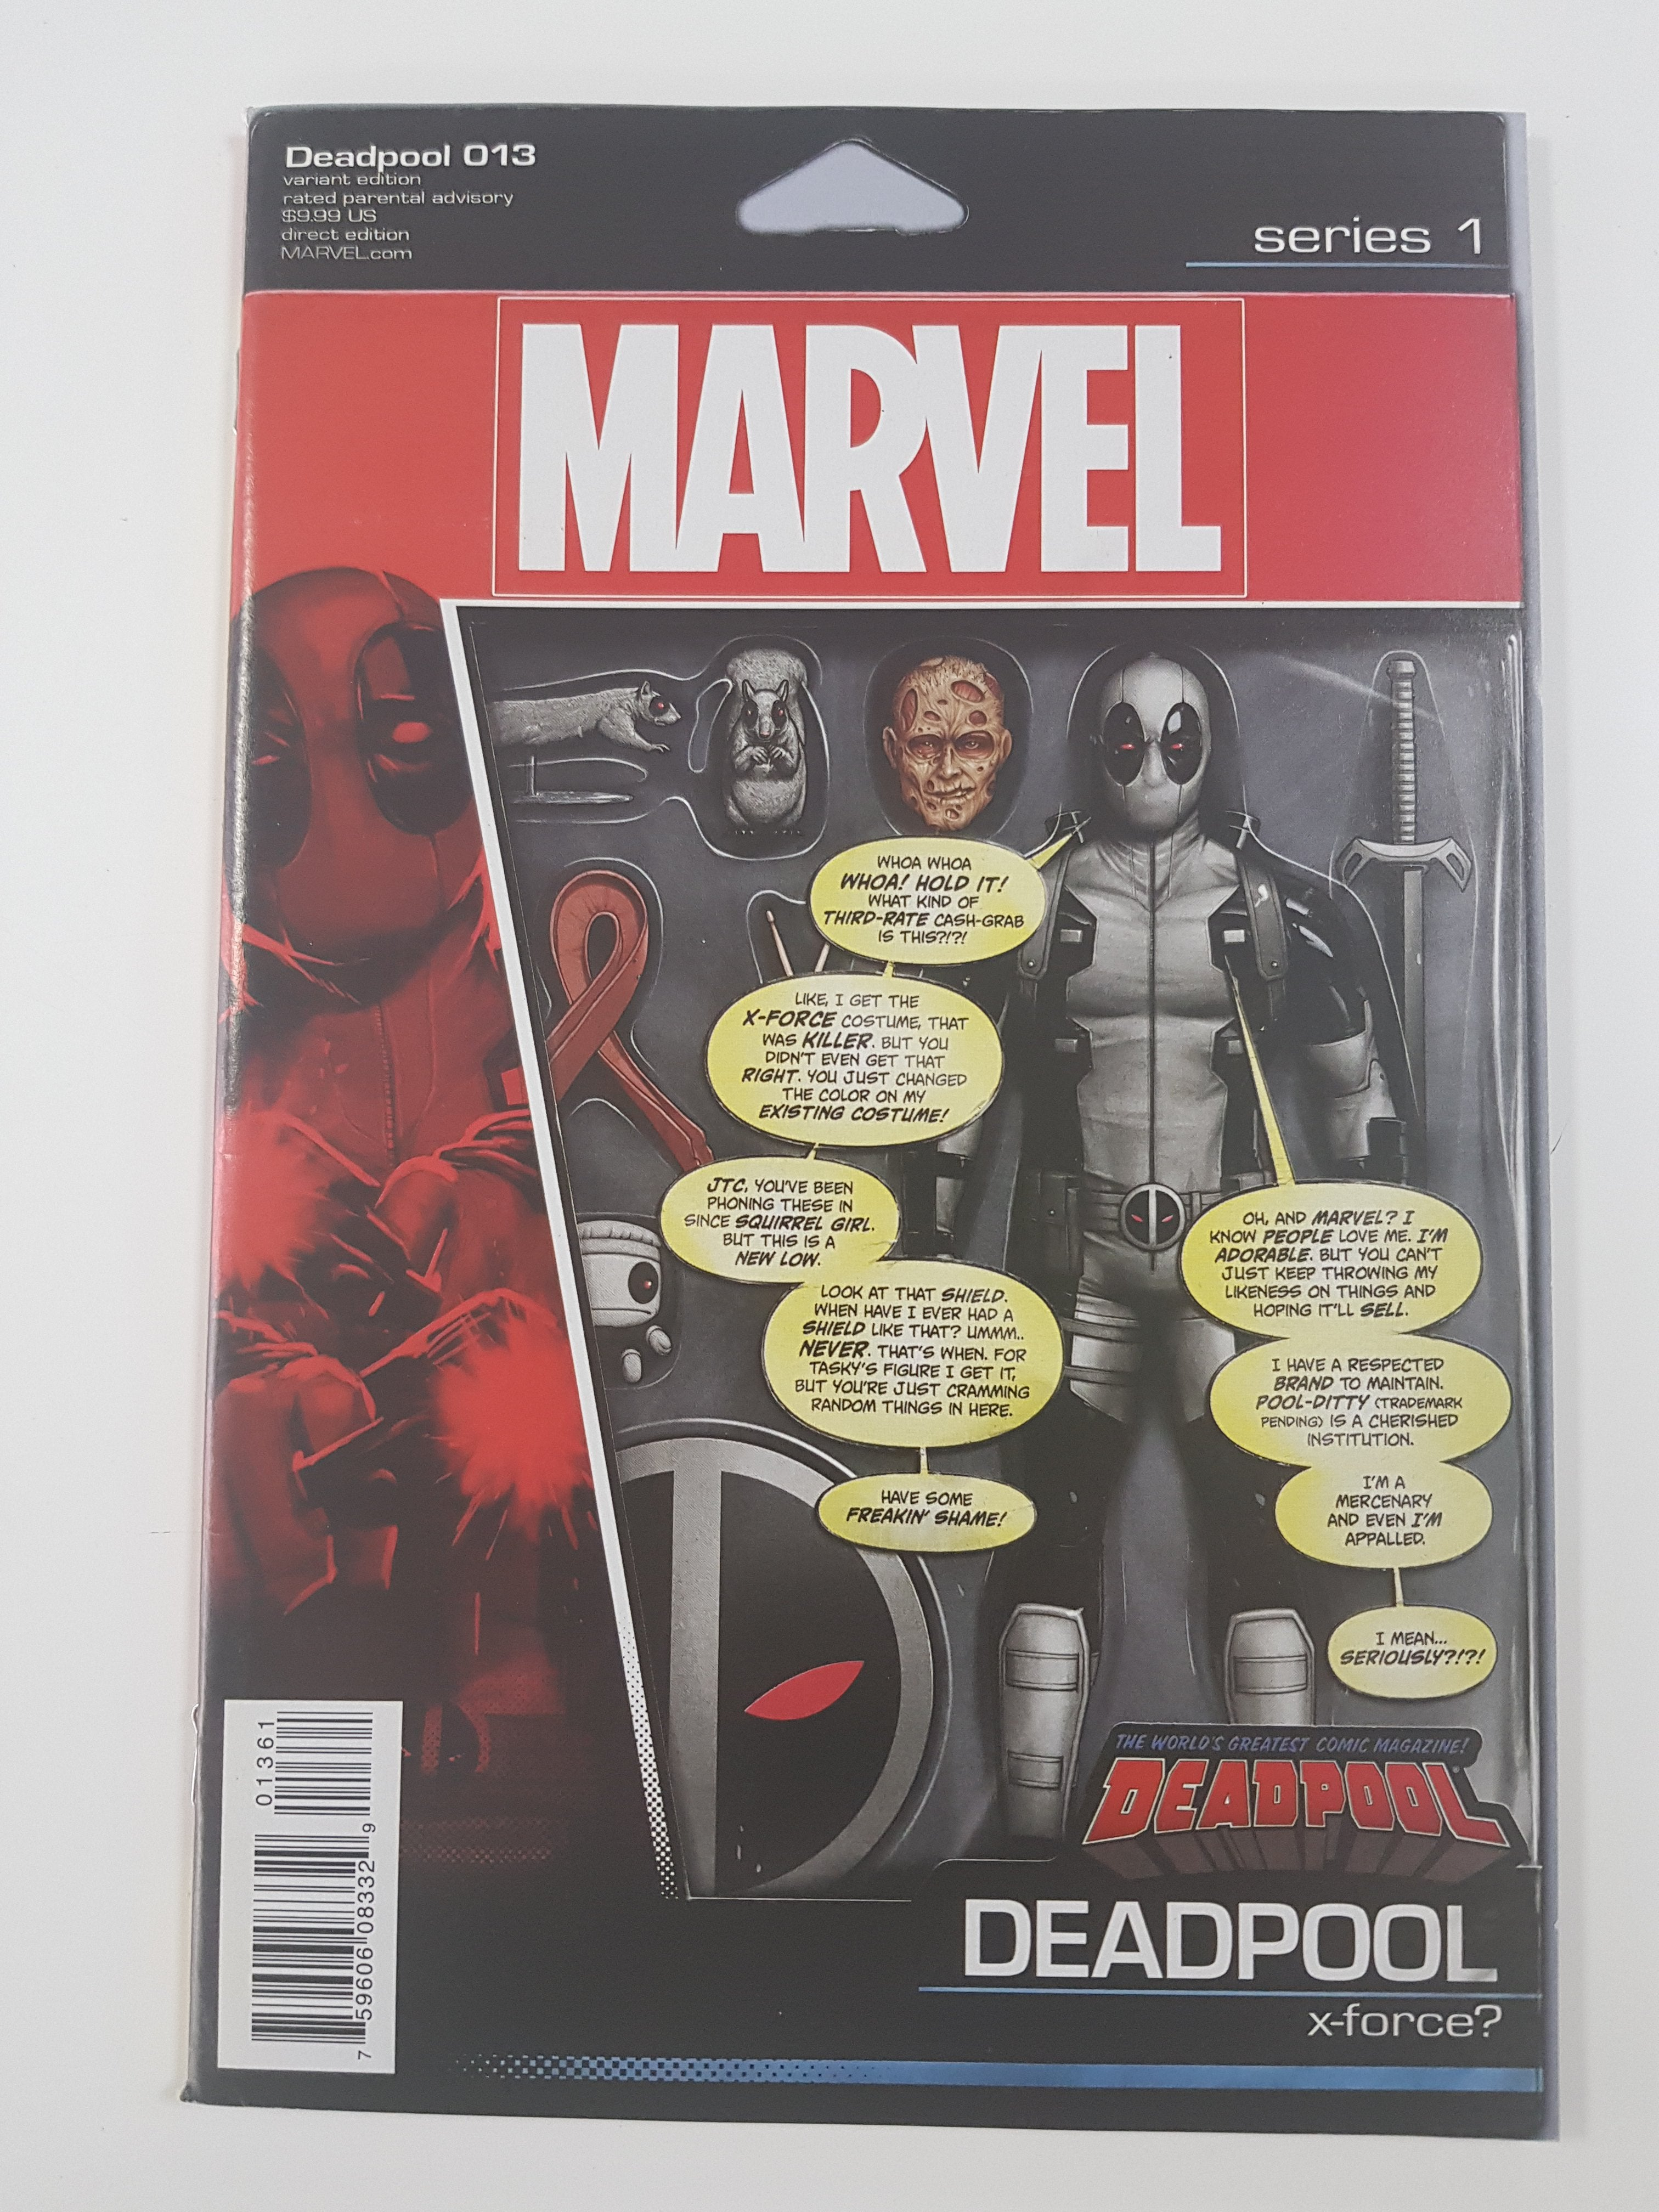 DEADPOOL #13 ACTION FIGURE VARIANT